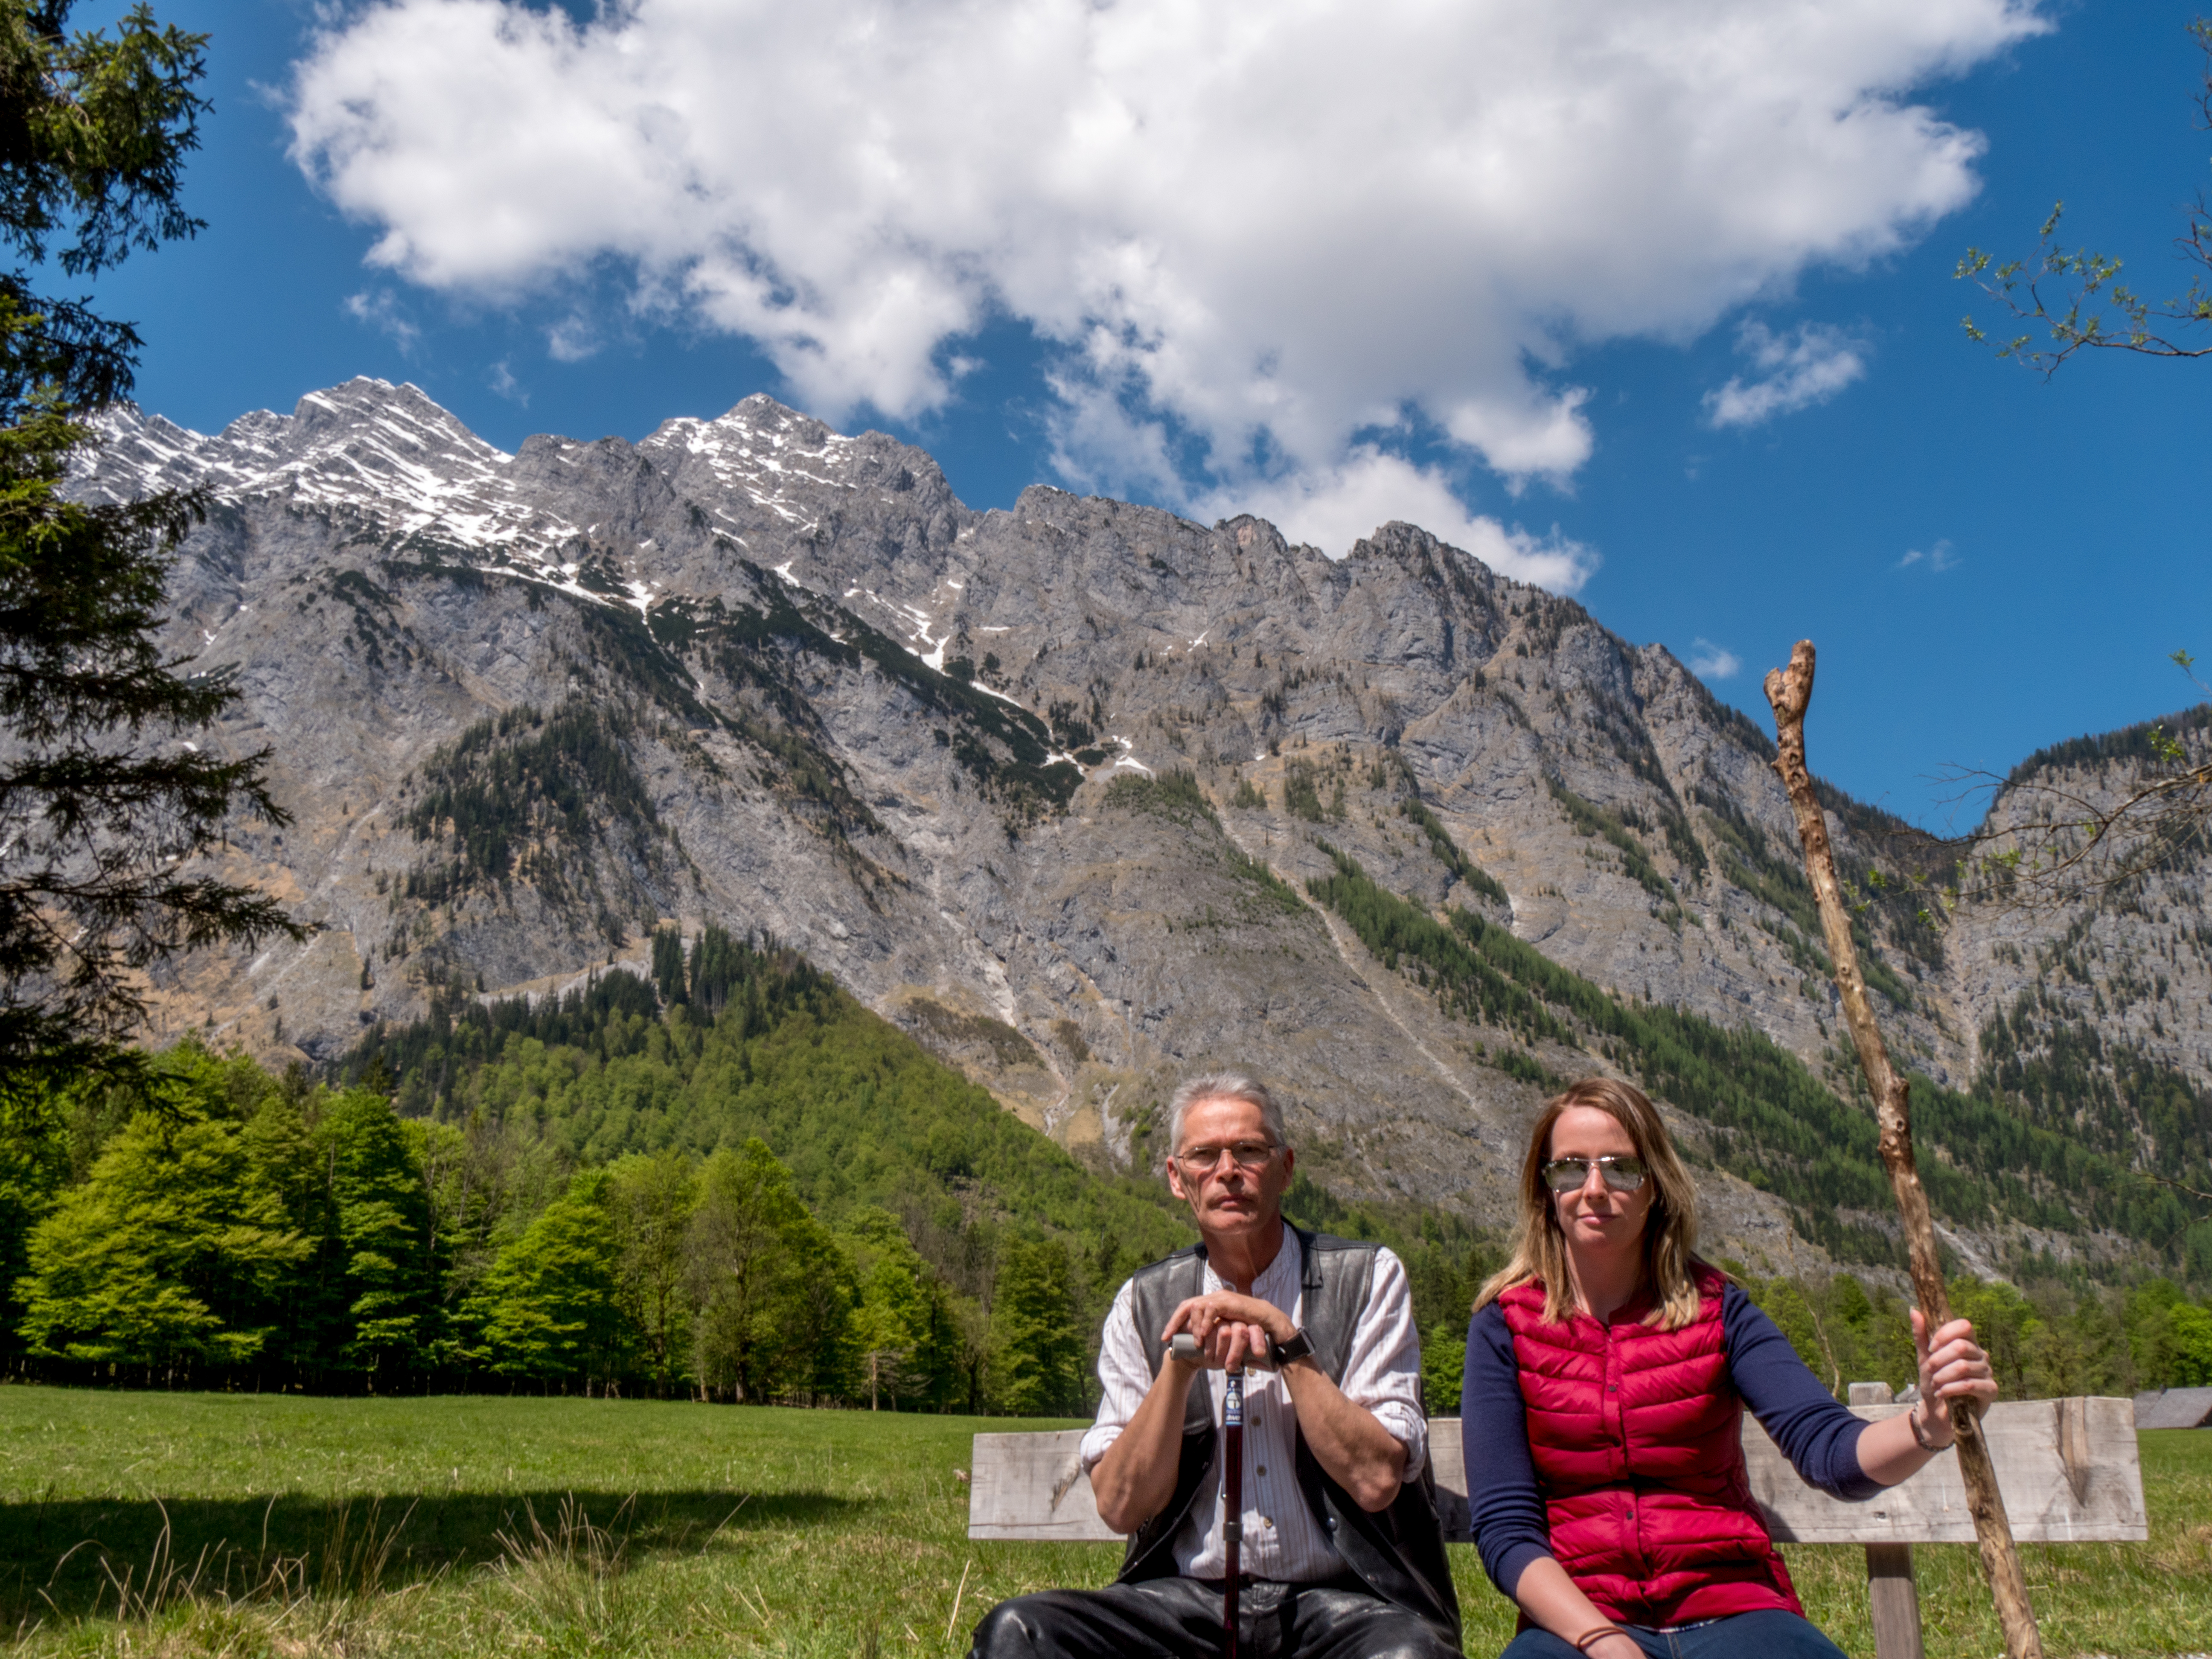 Father and I at the base of the Alps in Konigsee Lake in Germany